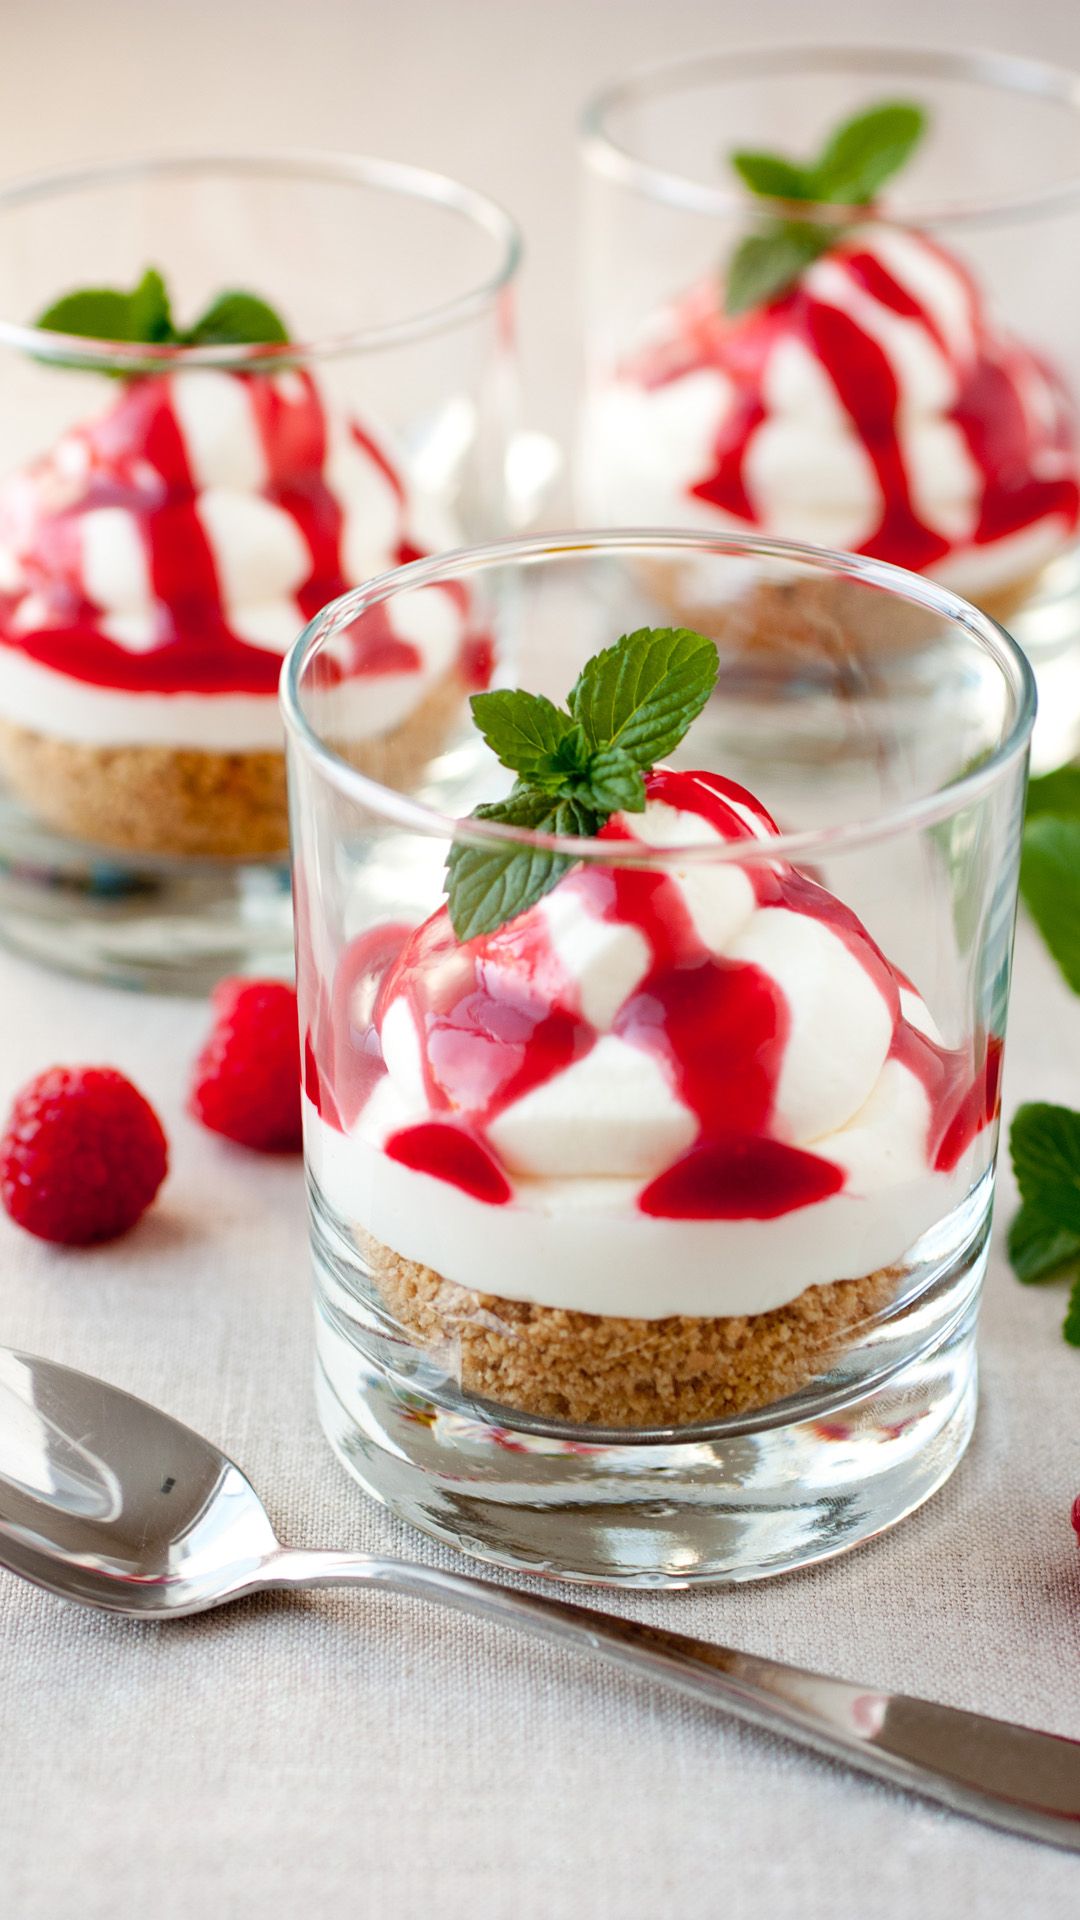 Cheesecake mousse htc one wallpaper